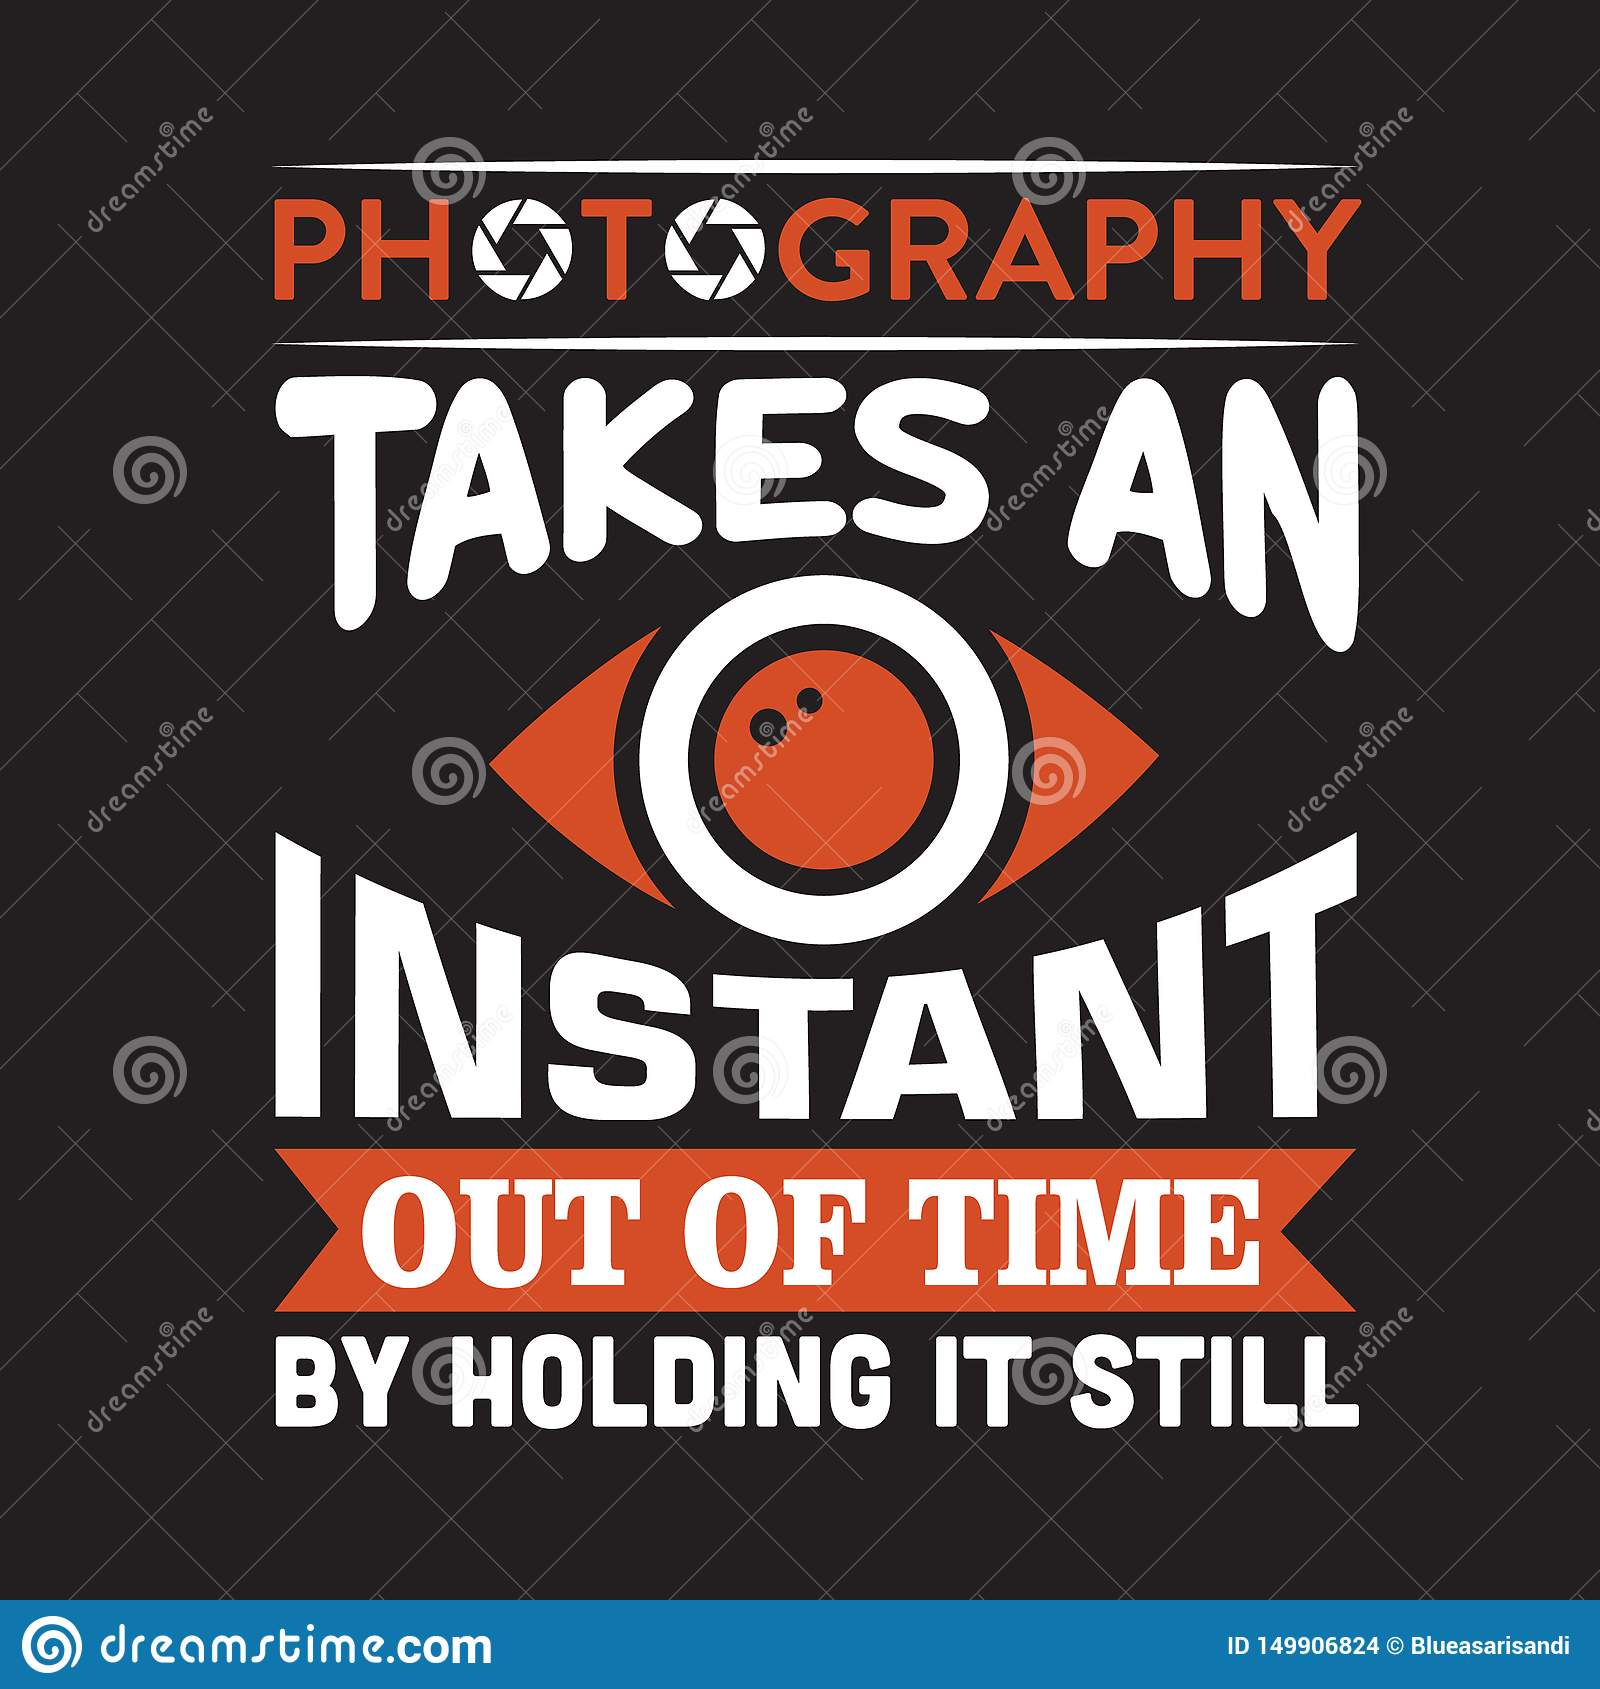 Advert for photography